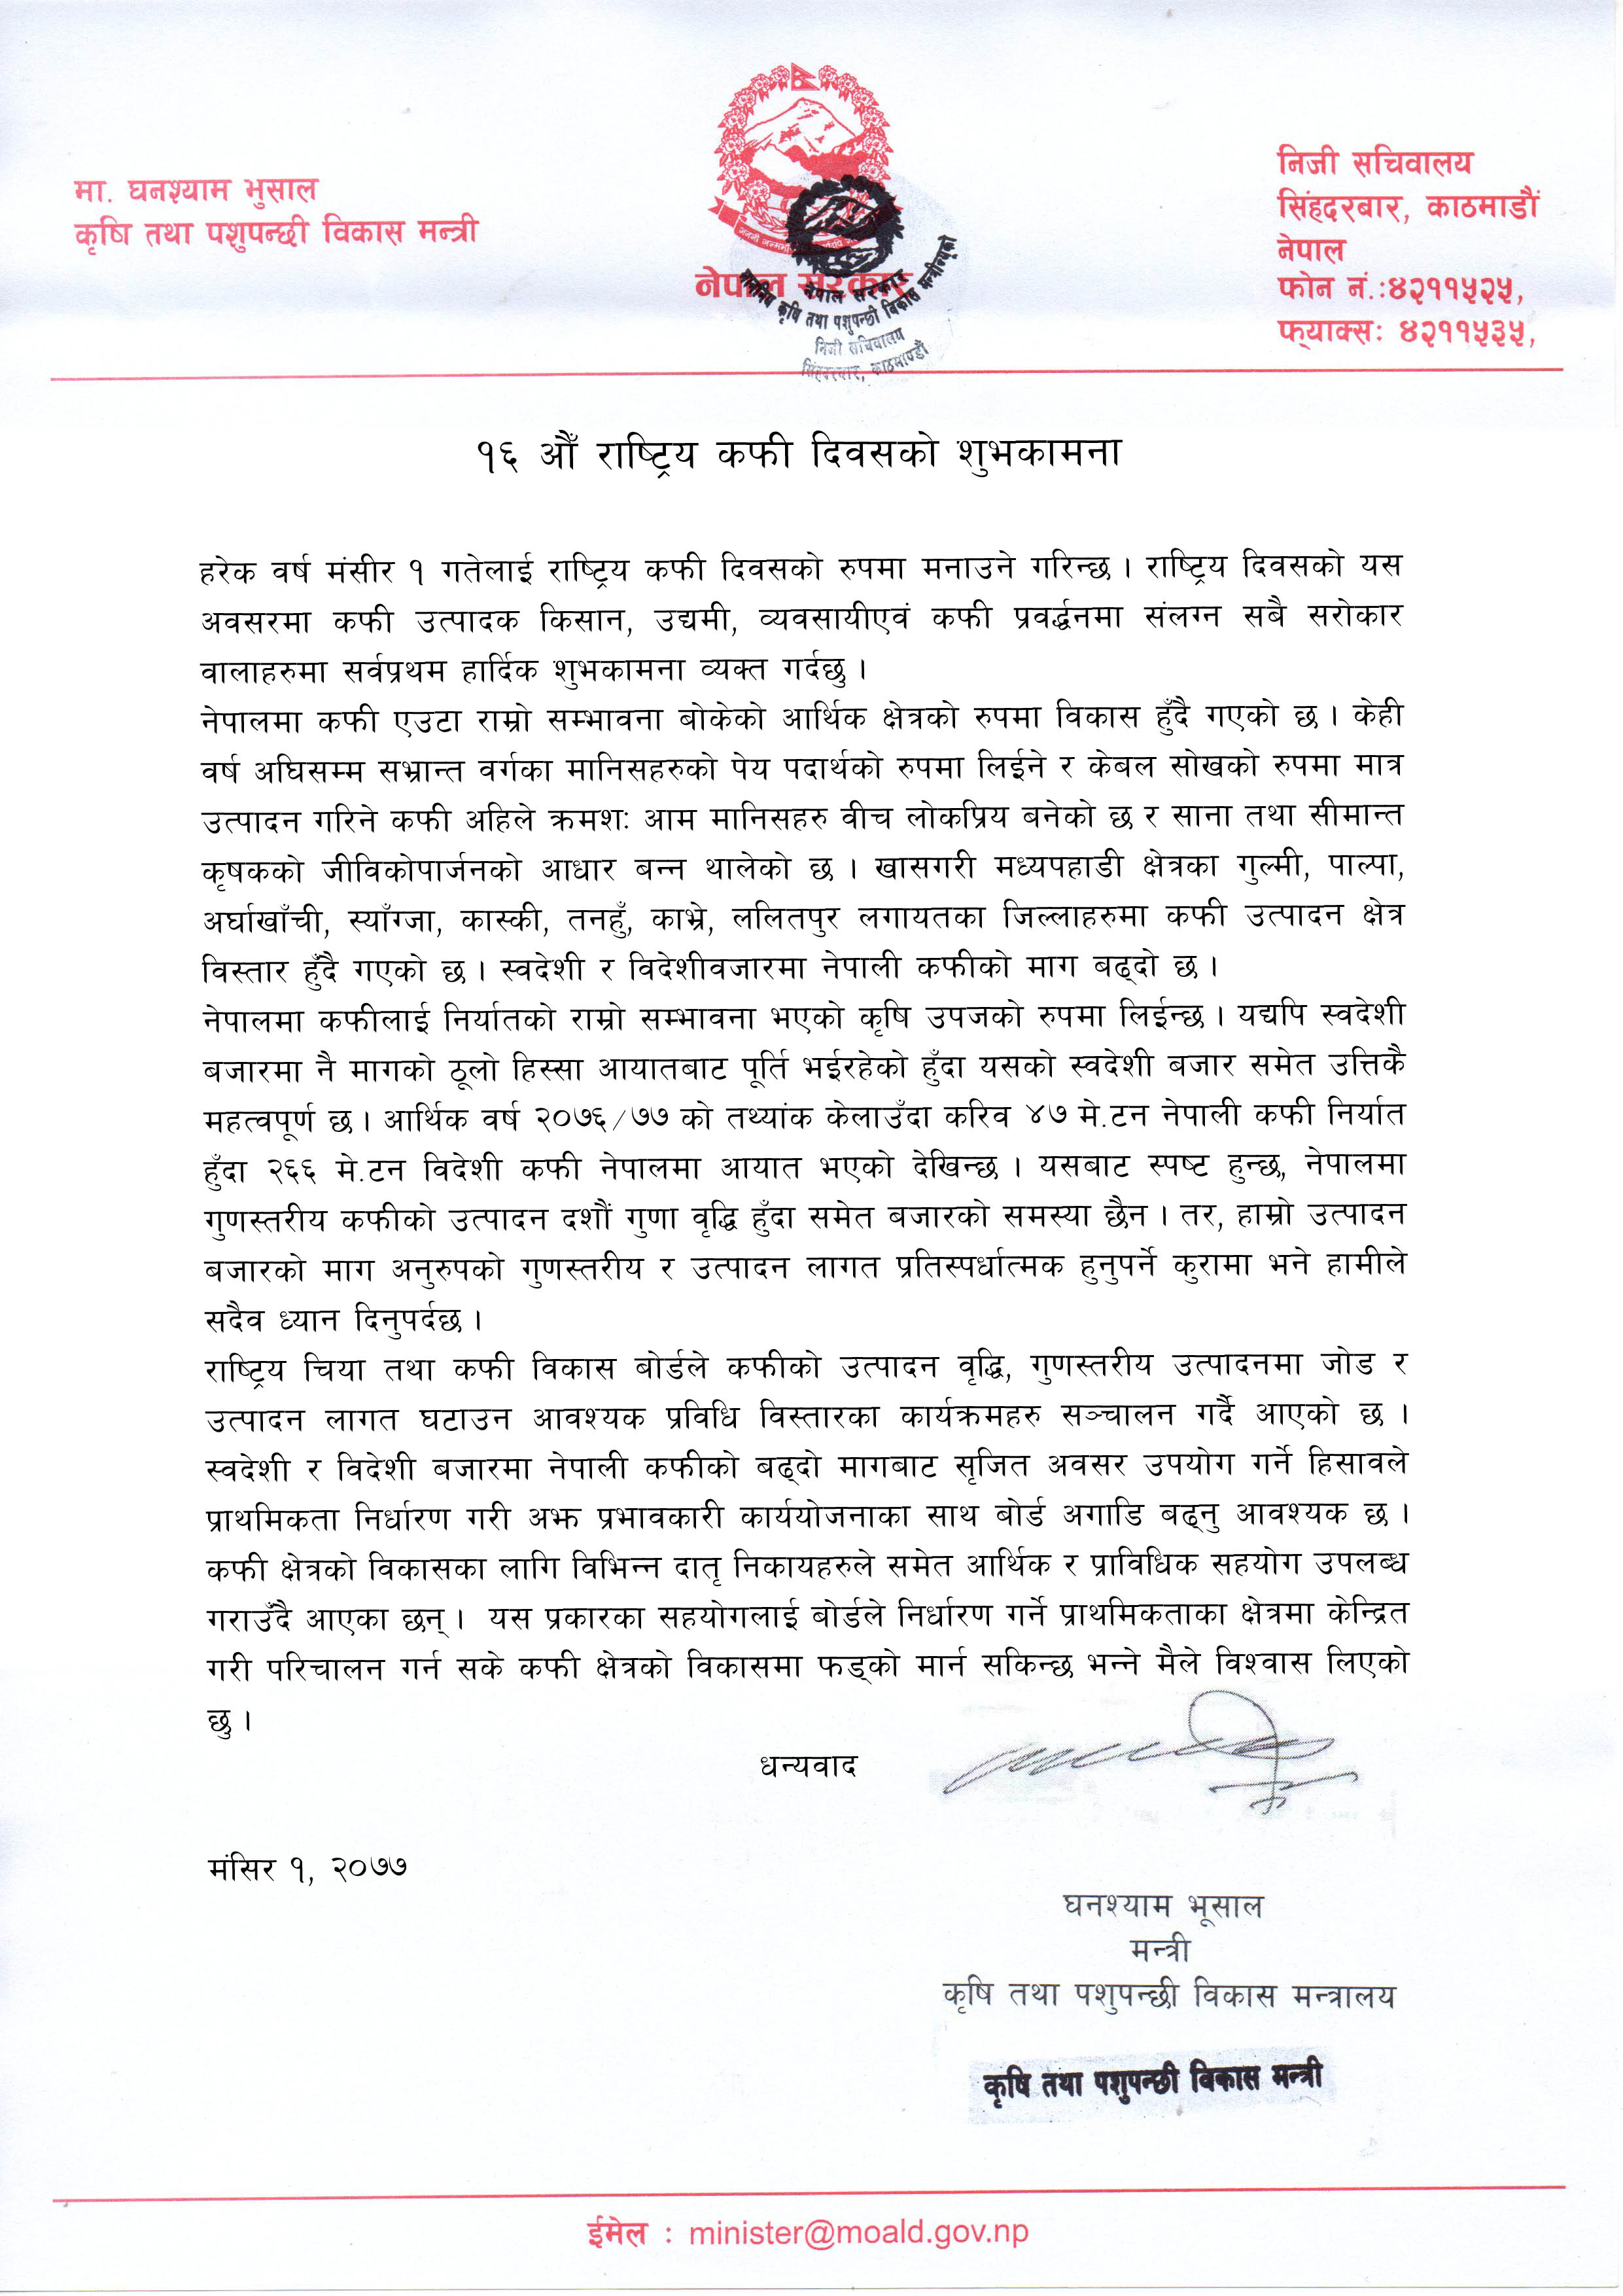 Message of Chairman and Agriculture Minister on the occasion of 16th National Coffee Day